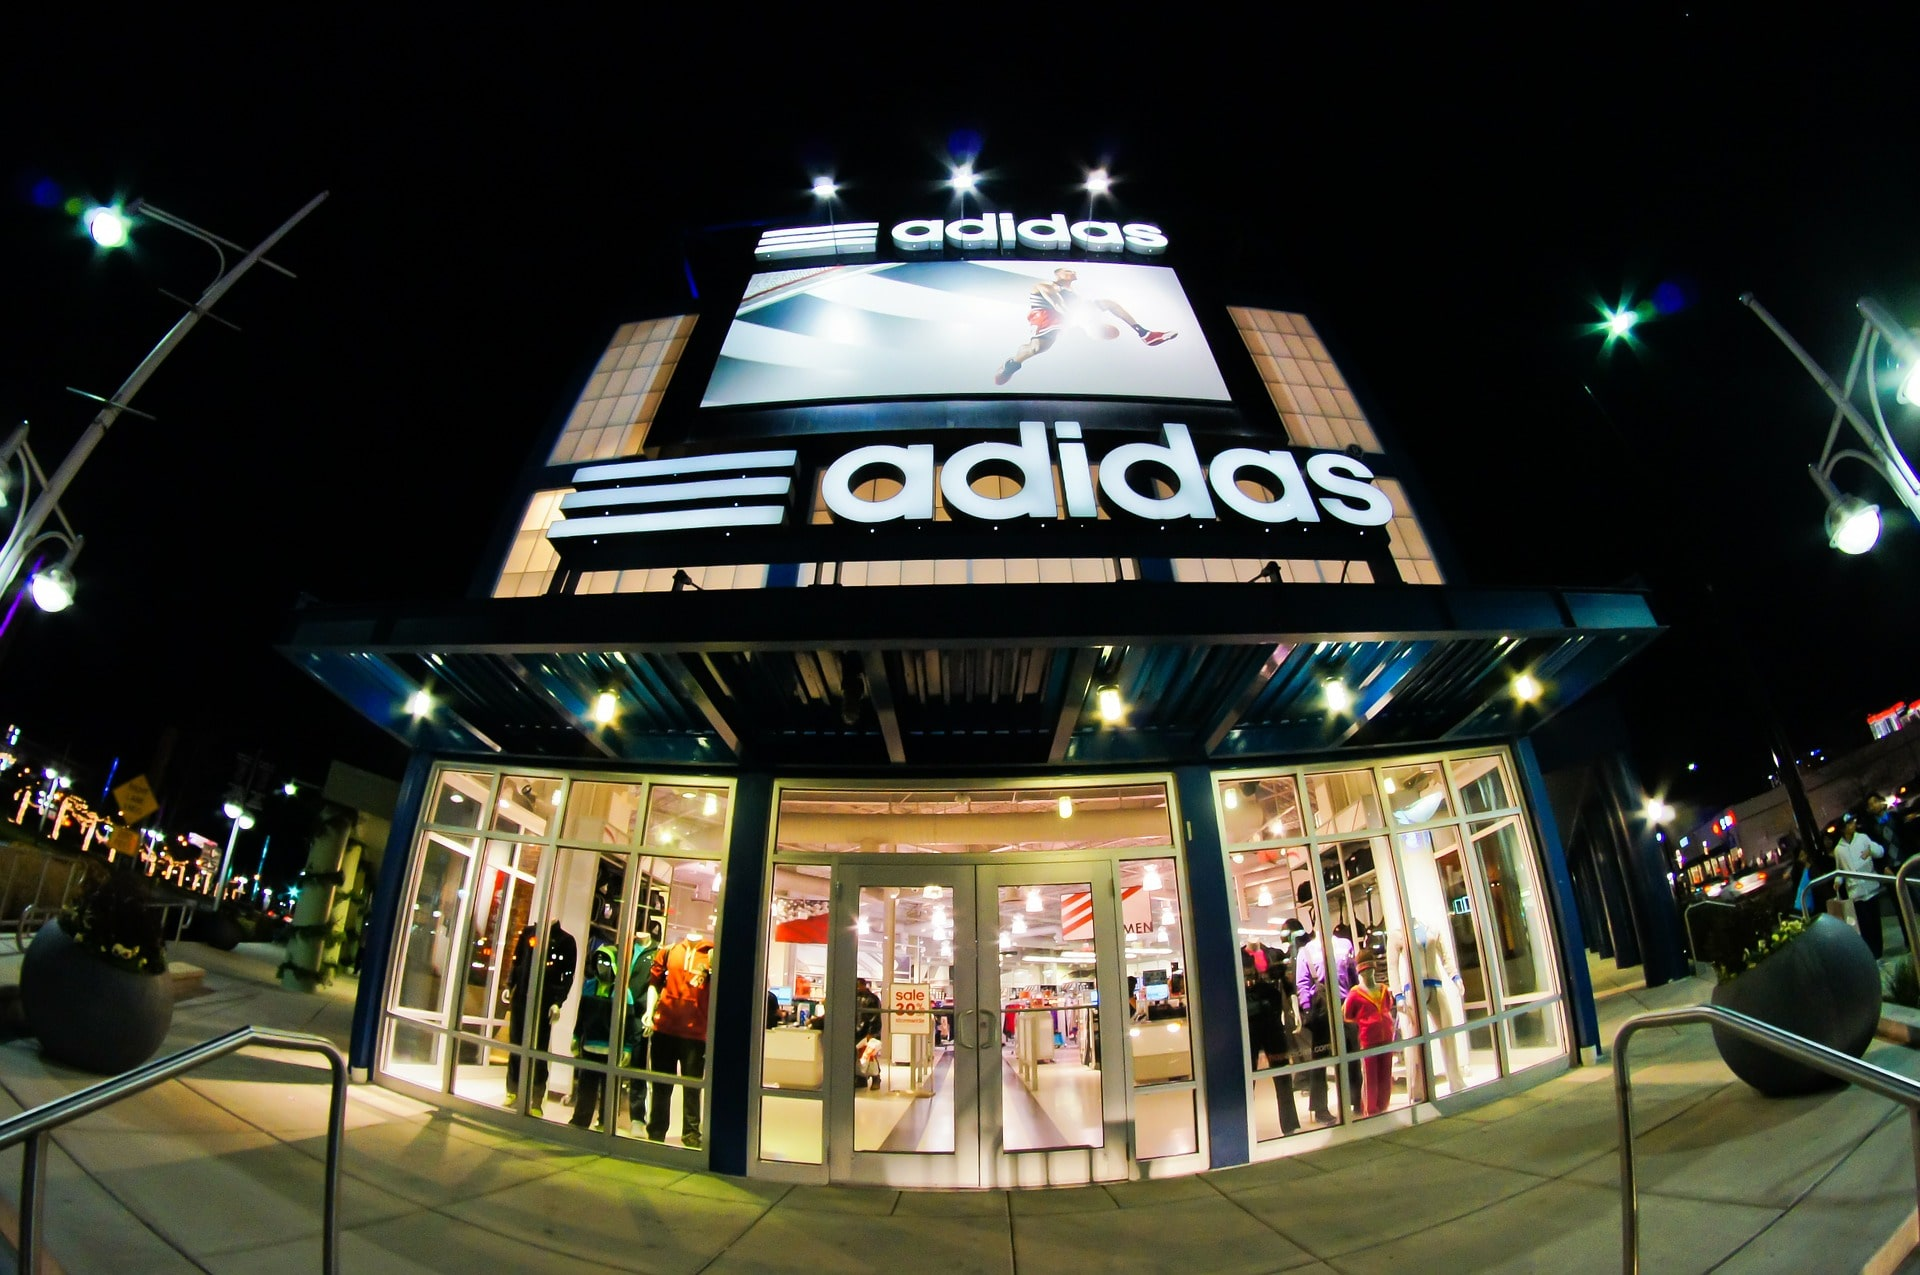 Adidas loses 3-stripes trade mark battle in Europe